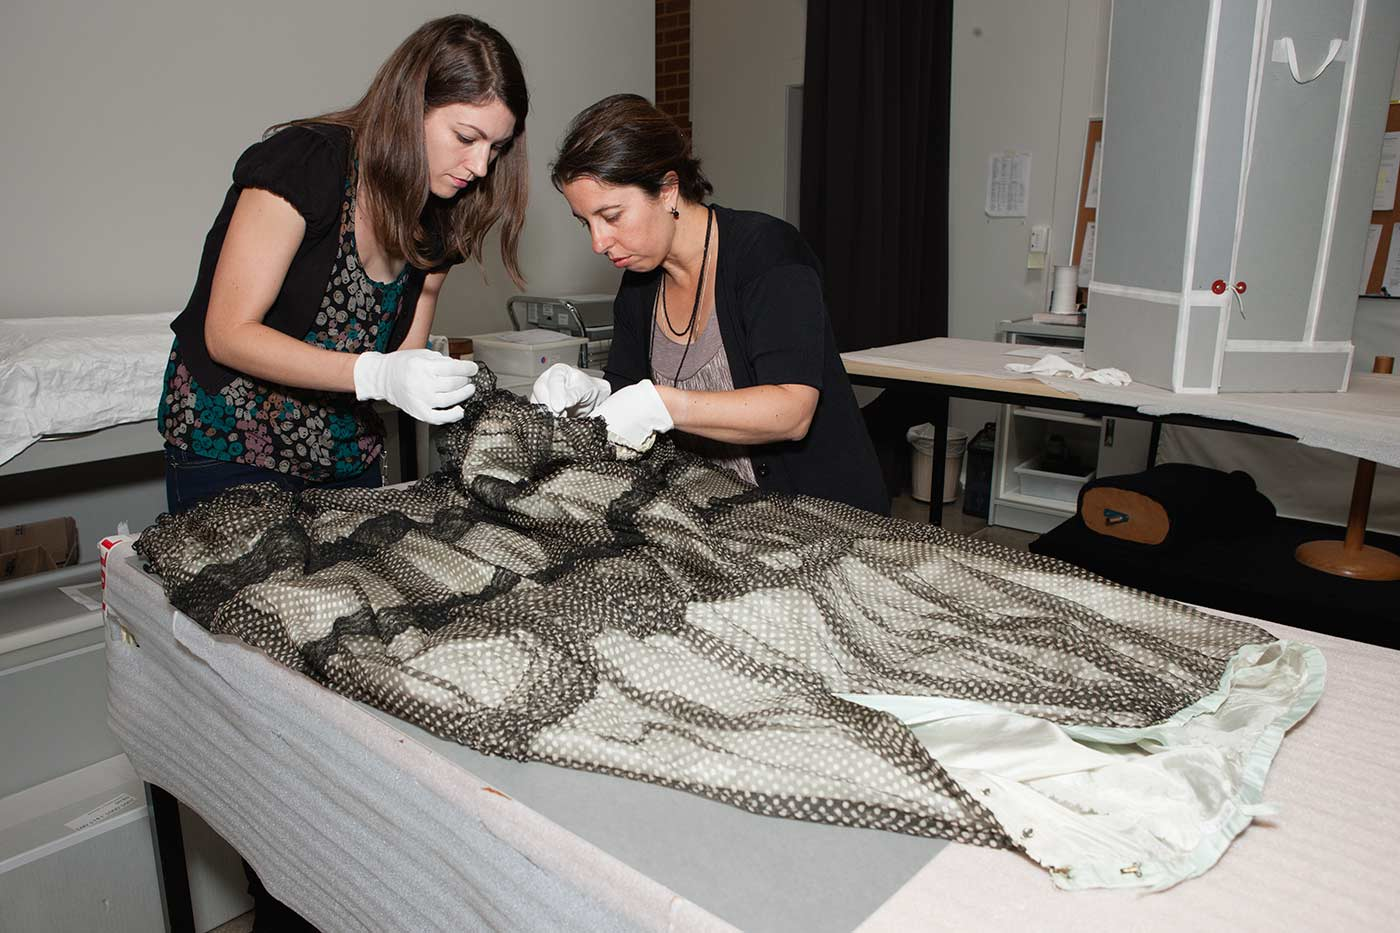 Two conservators prepare a skirt. - click to view larger image